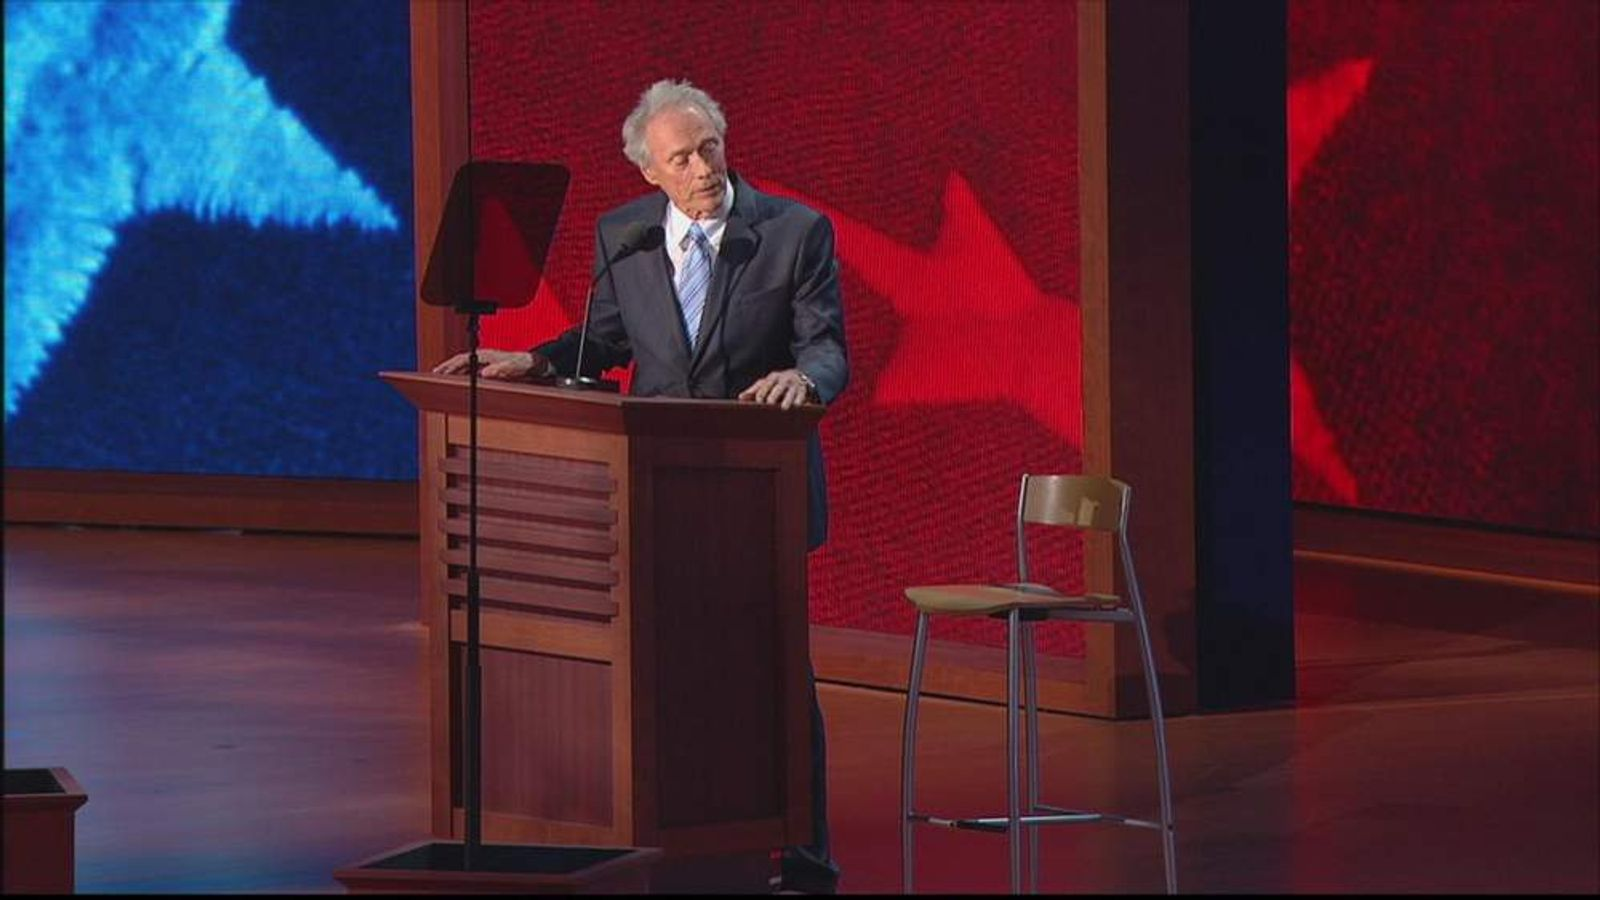 Clint Eastwood and an empty chair